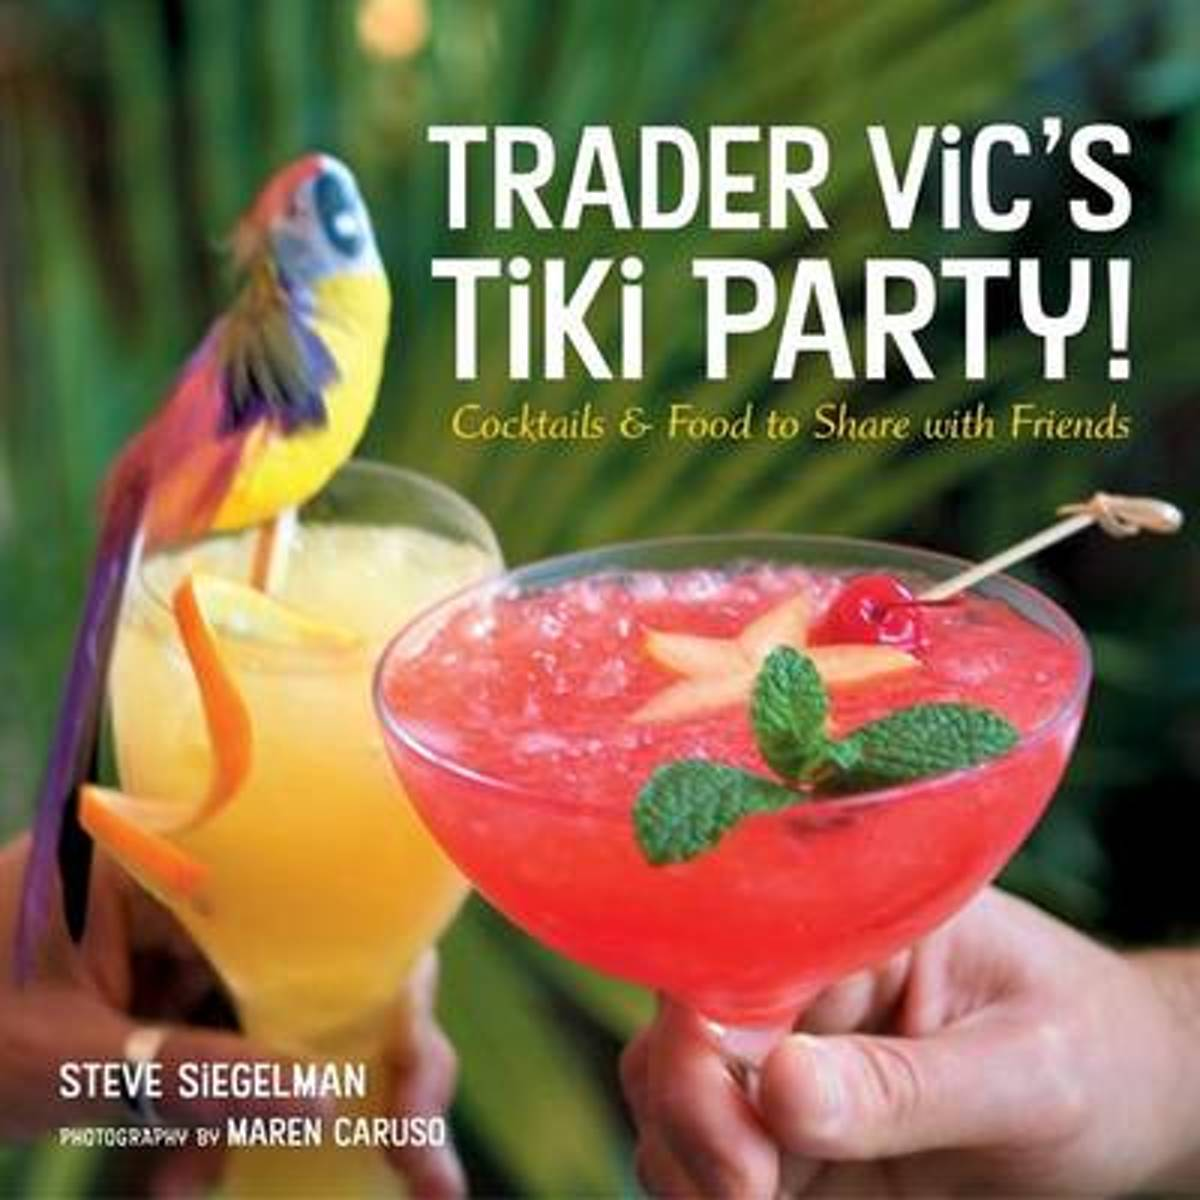 Trader Vic's Cocktail And Party Food